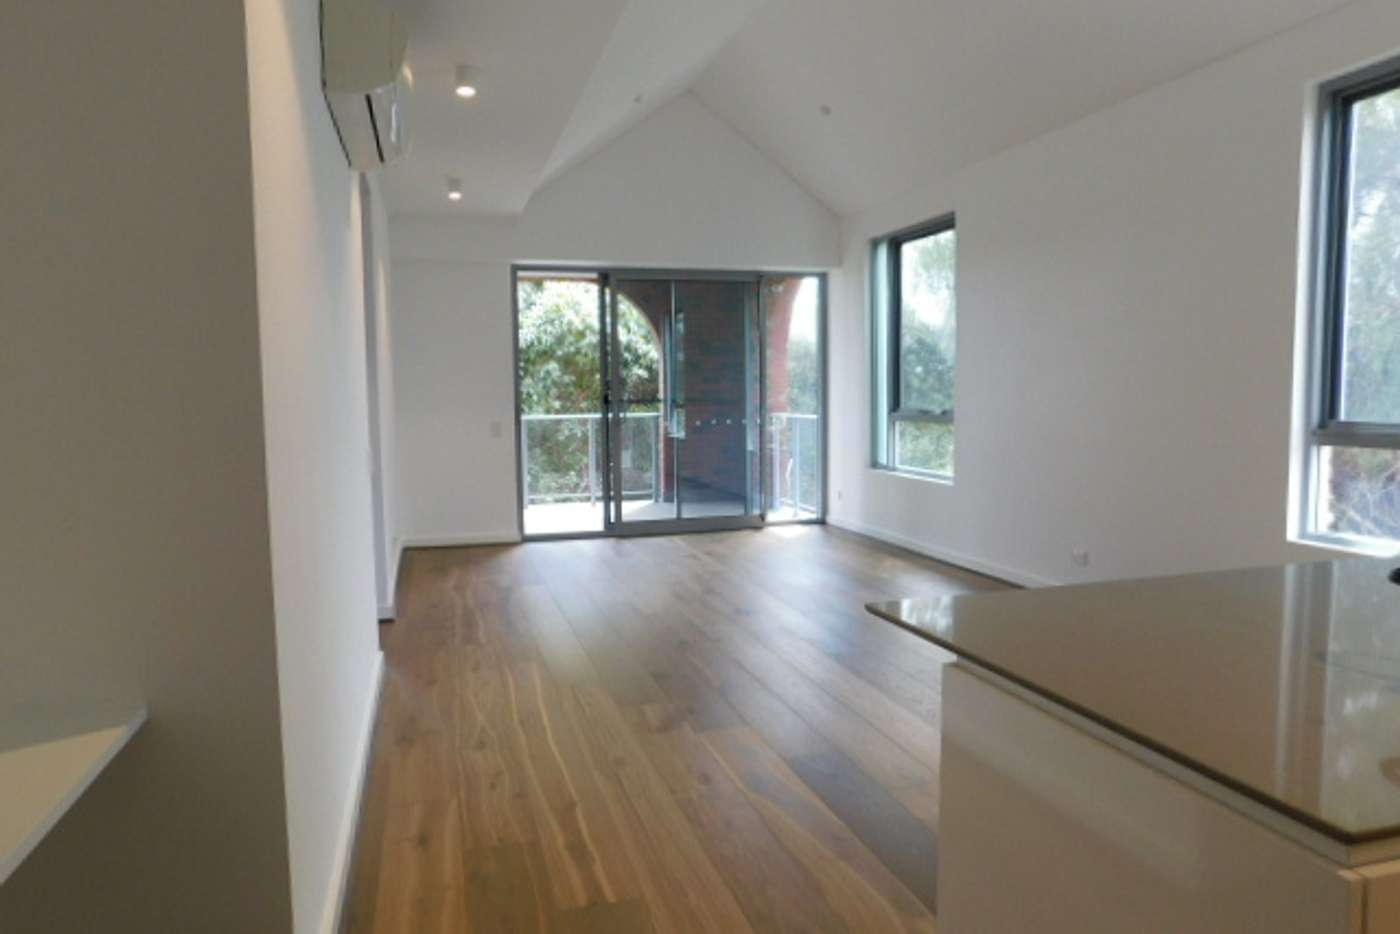 Sixth view of Homely apartment listing, 17/110 Terrace Road, Guildford WA 6055